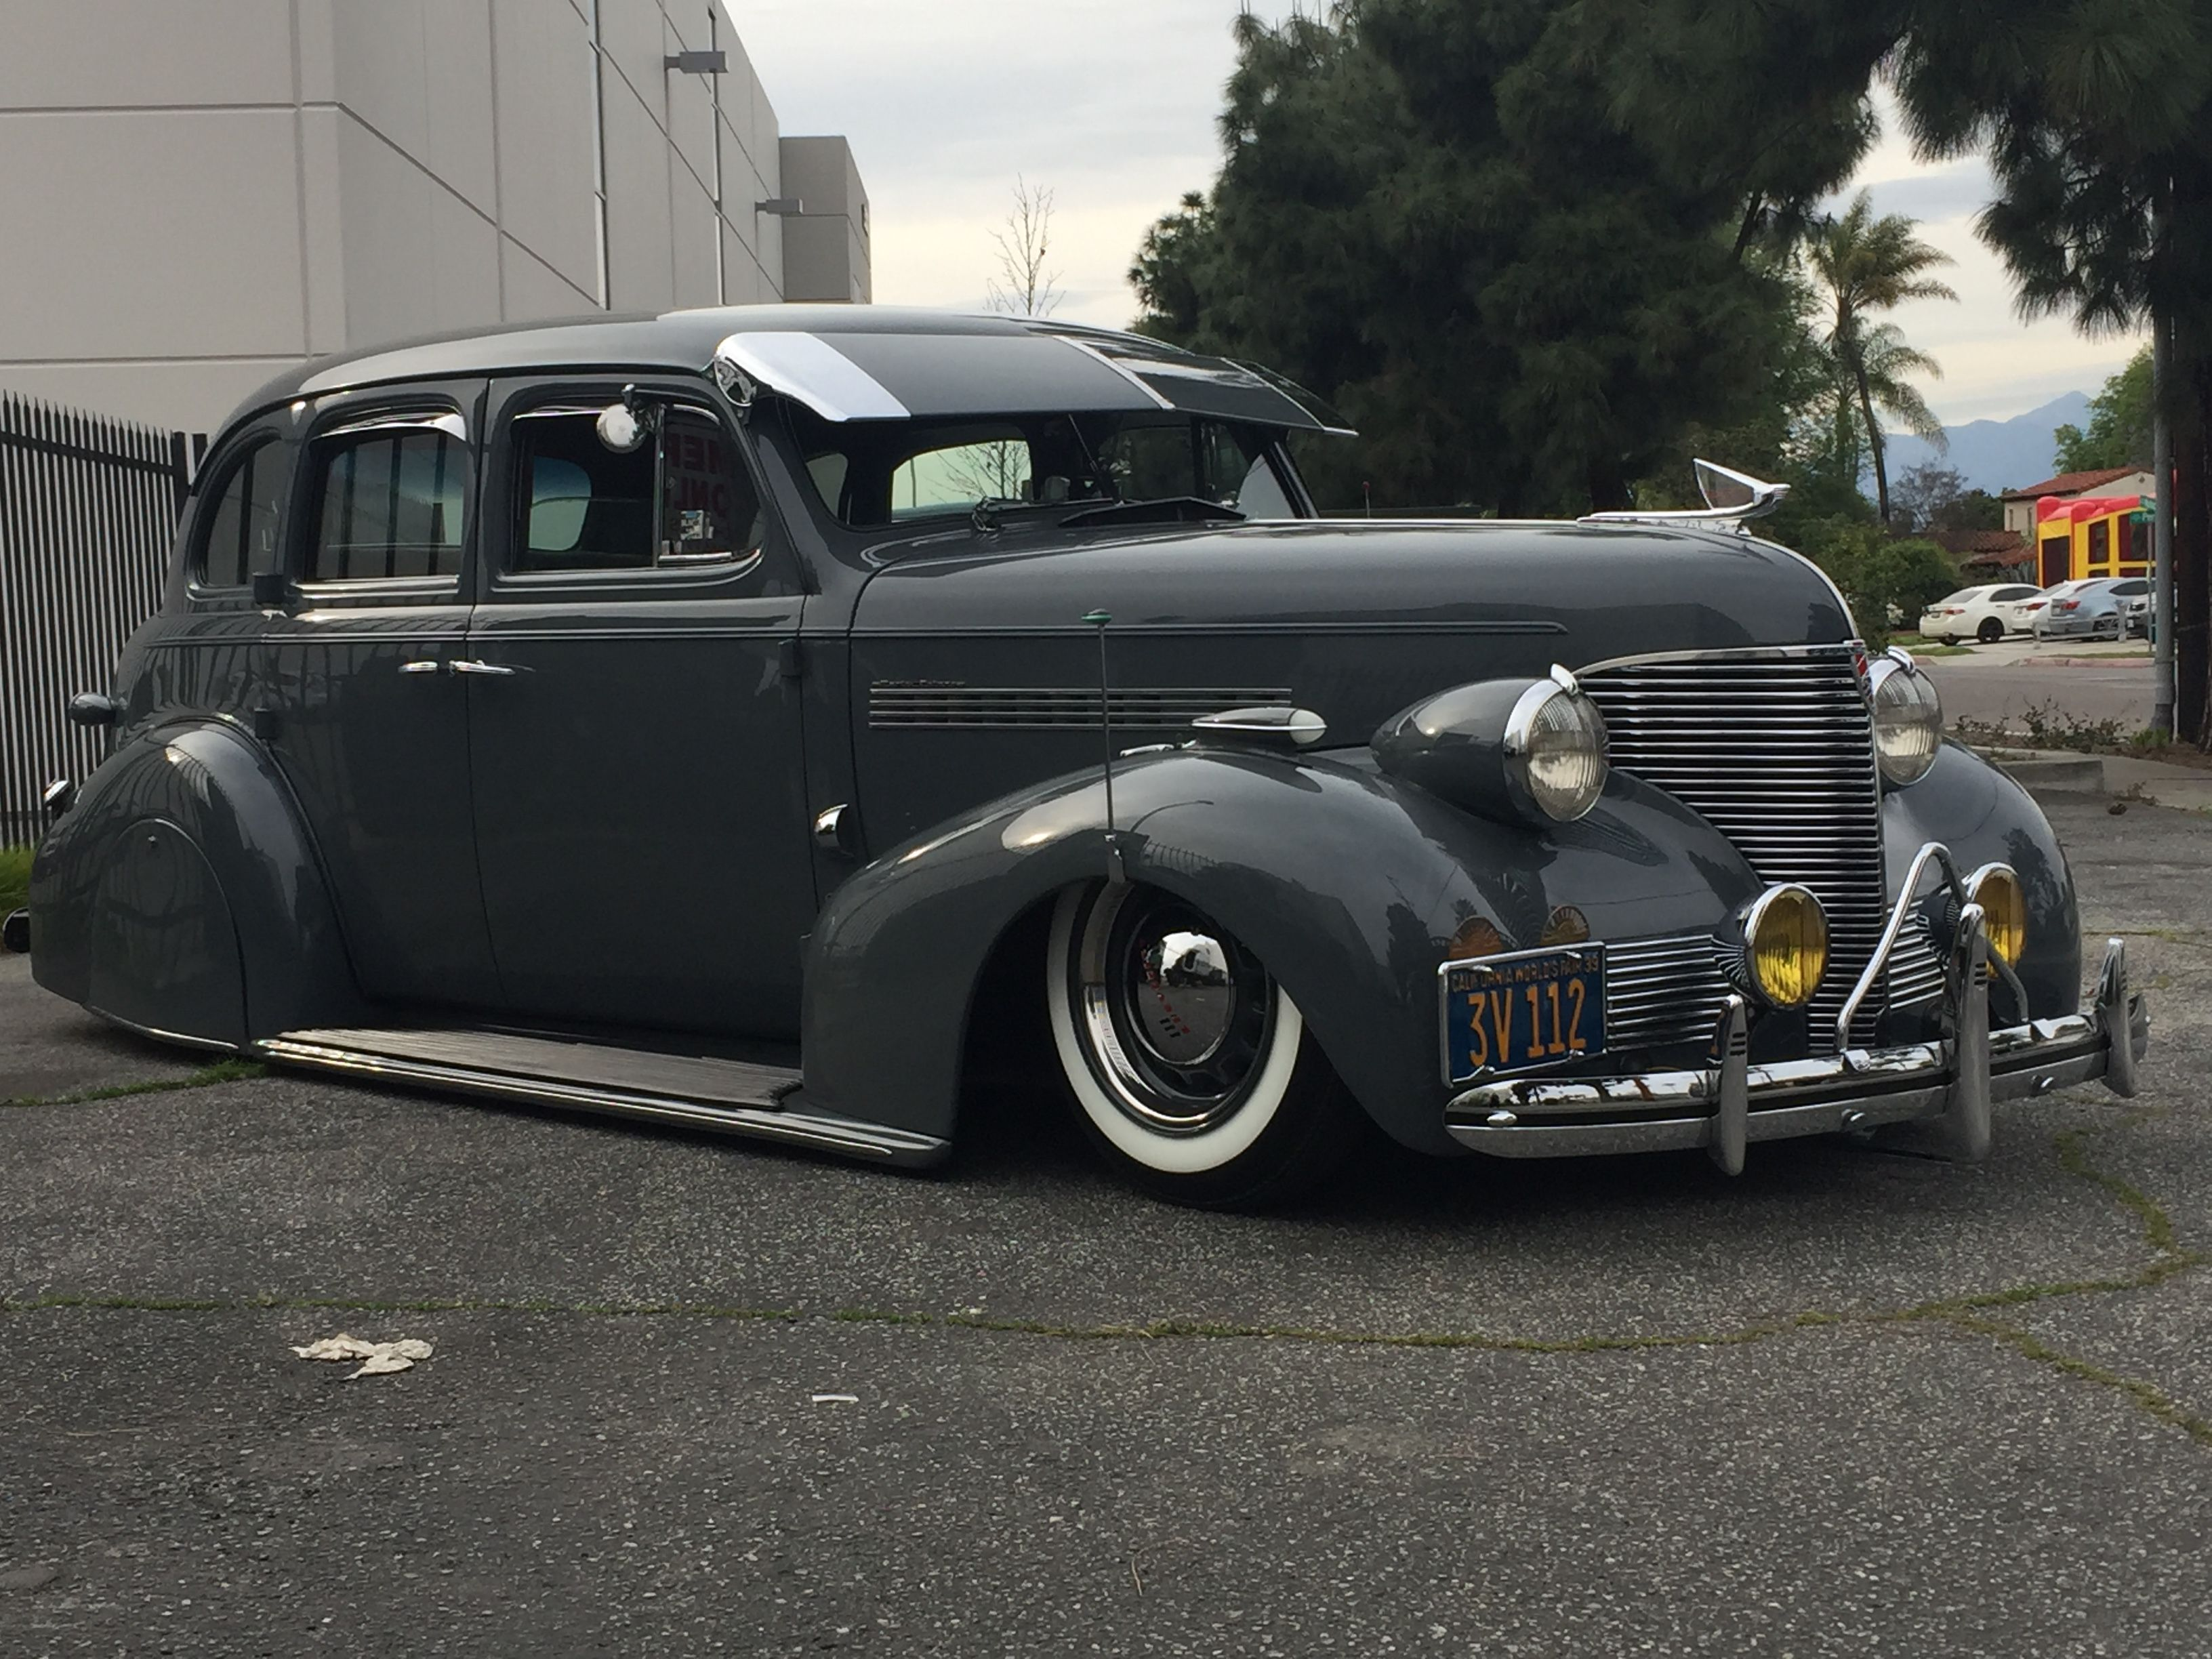 Pelon Arzola S 1939 Chevy With Images Cool Old Cars Classic Cars Trucks Lowrider Cars